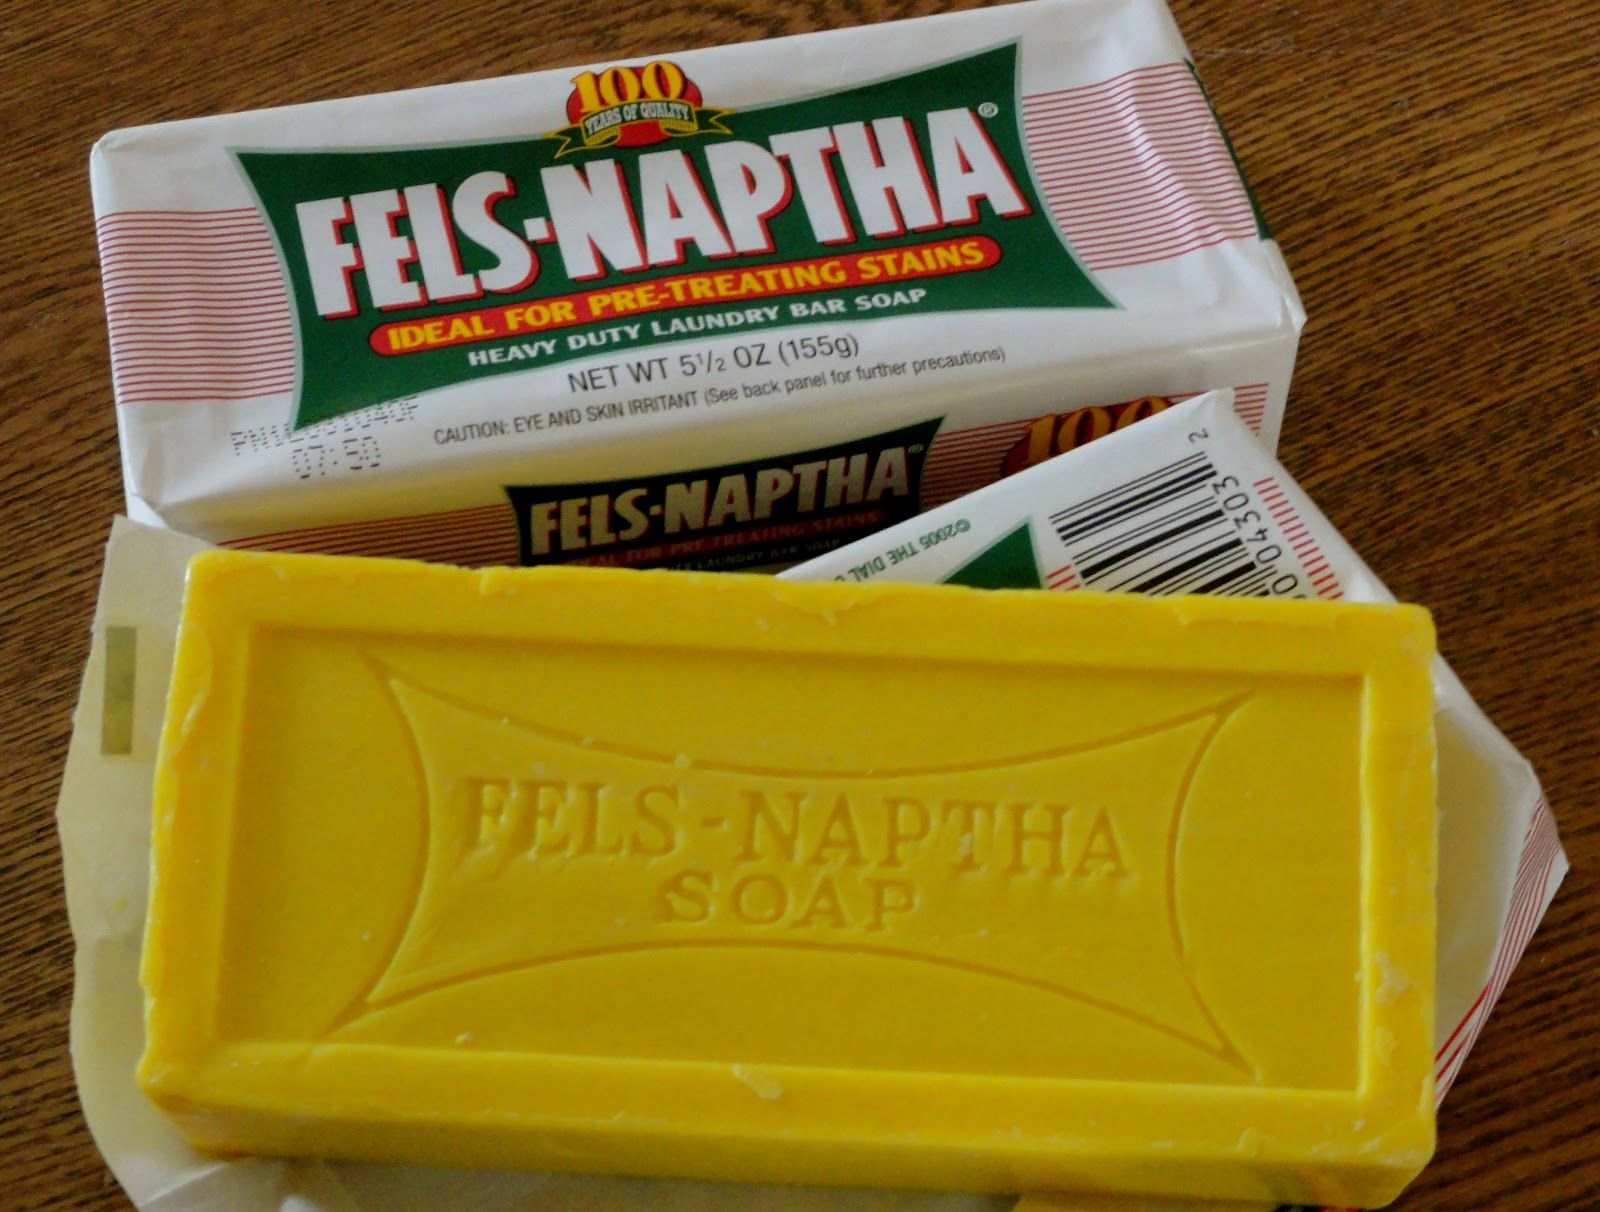 Fels Naptha Bar Soap With Images Fels Naptha Treating Stains